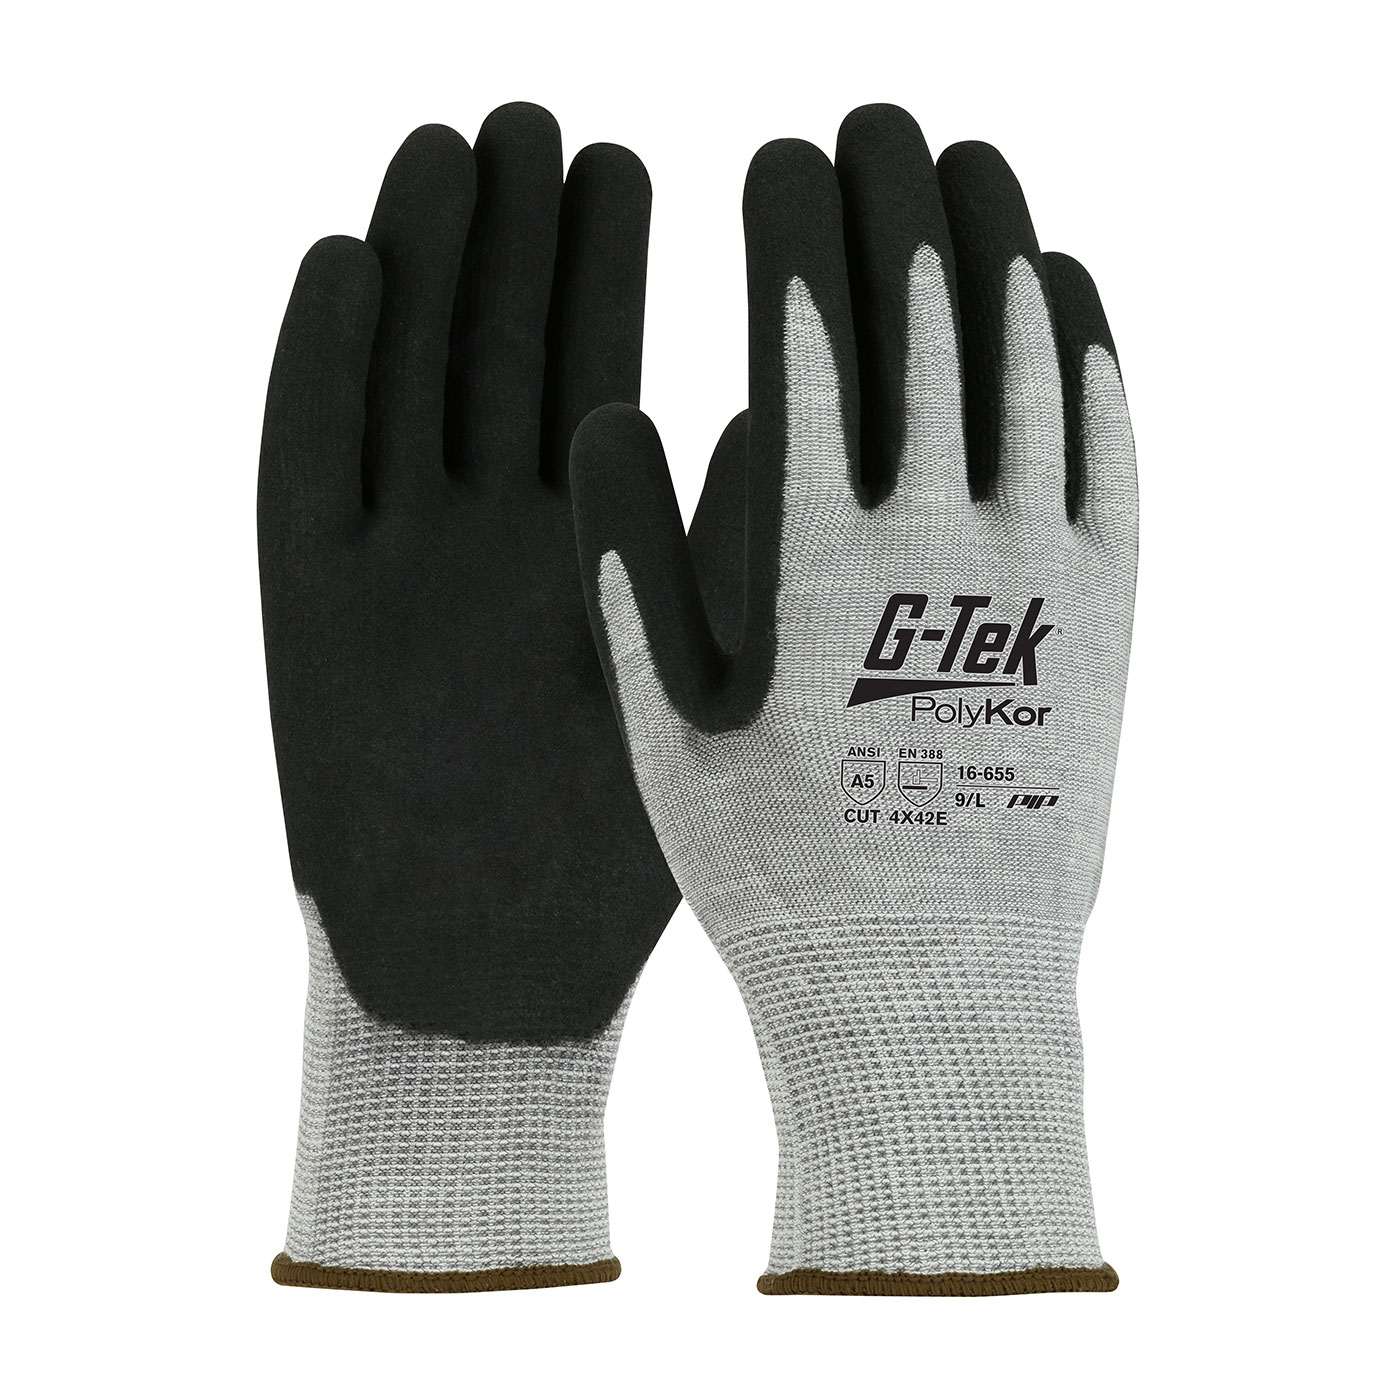 PIP G-Tek® PolyKor™ Double Dipped Nitrile Coated MicroSurface Grip A5 Cut Gloves #16-655